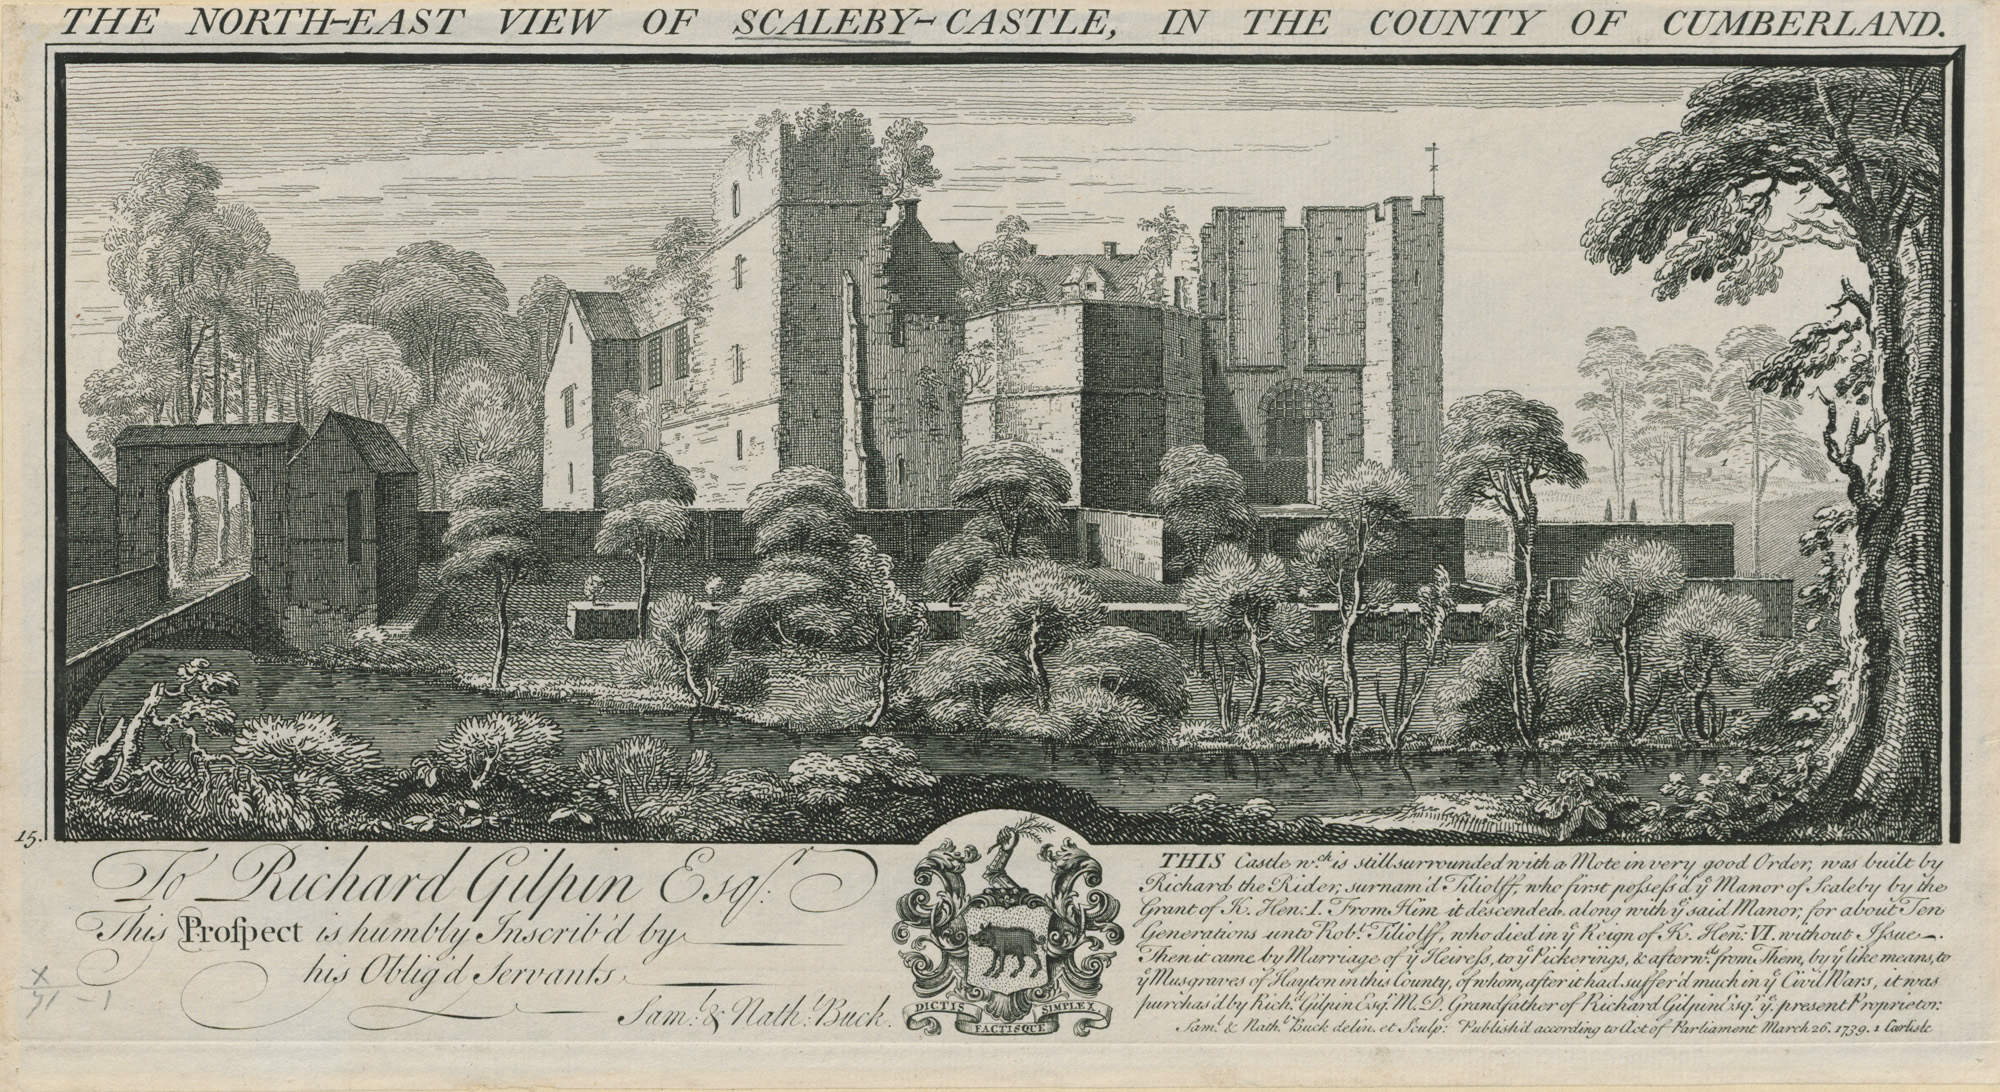 Engraving of Scaleby Castle